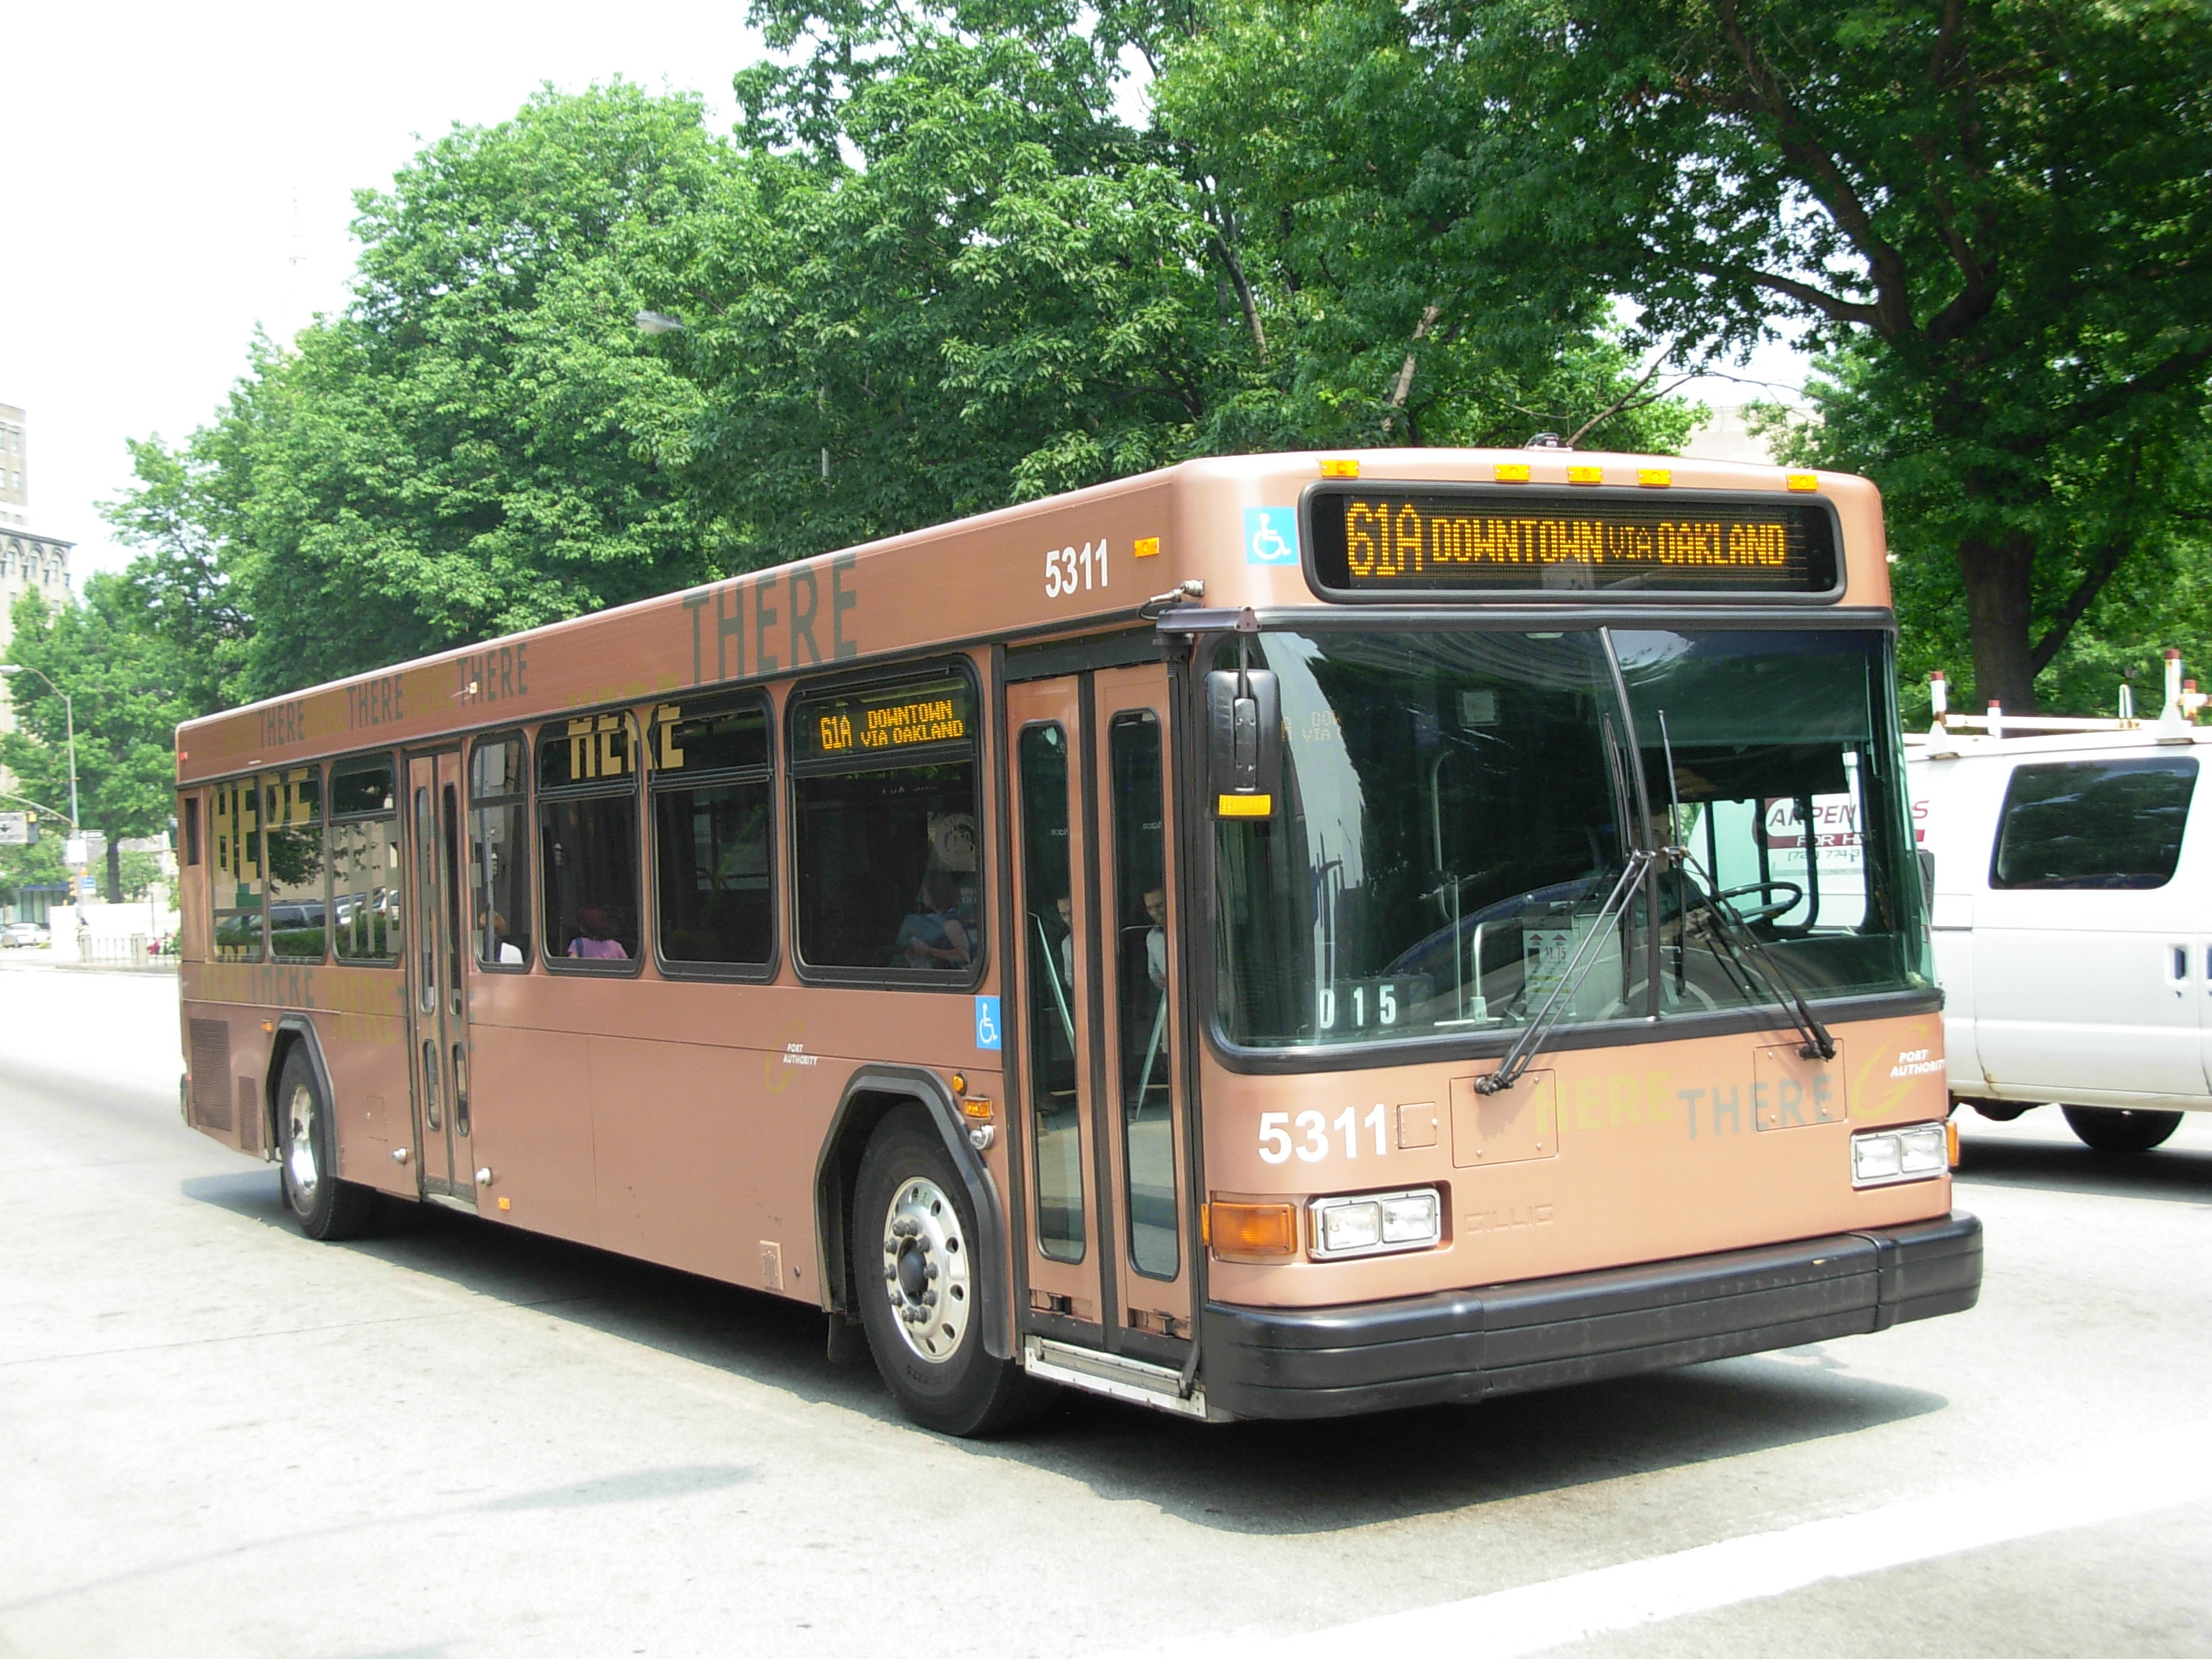 file:port authority bus pittsburgh 02 - wikimedia commons